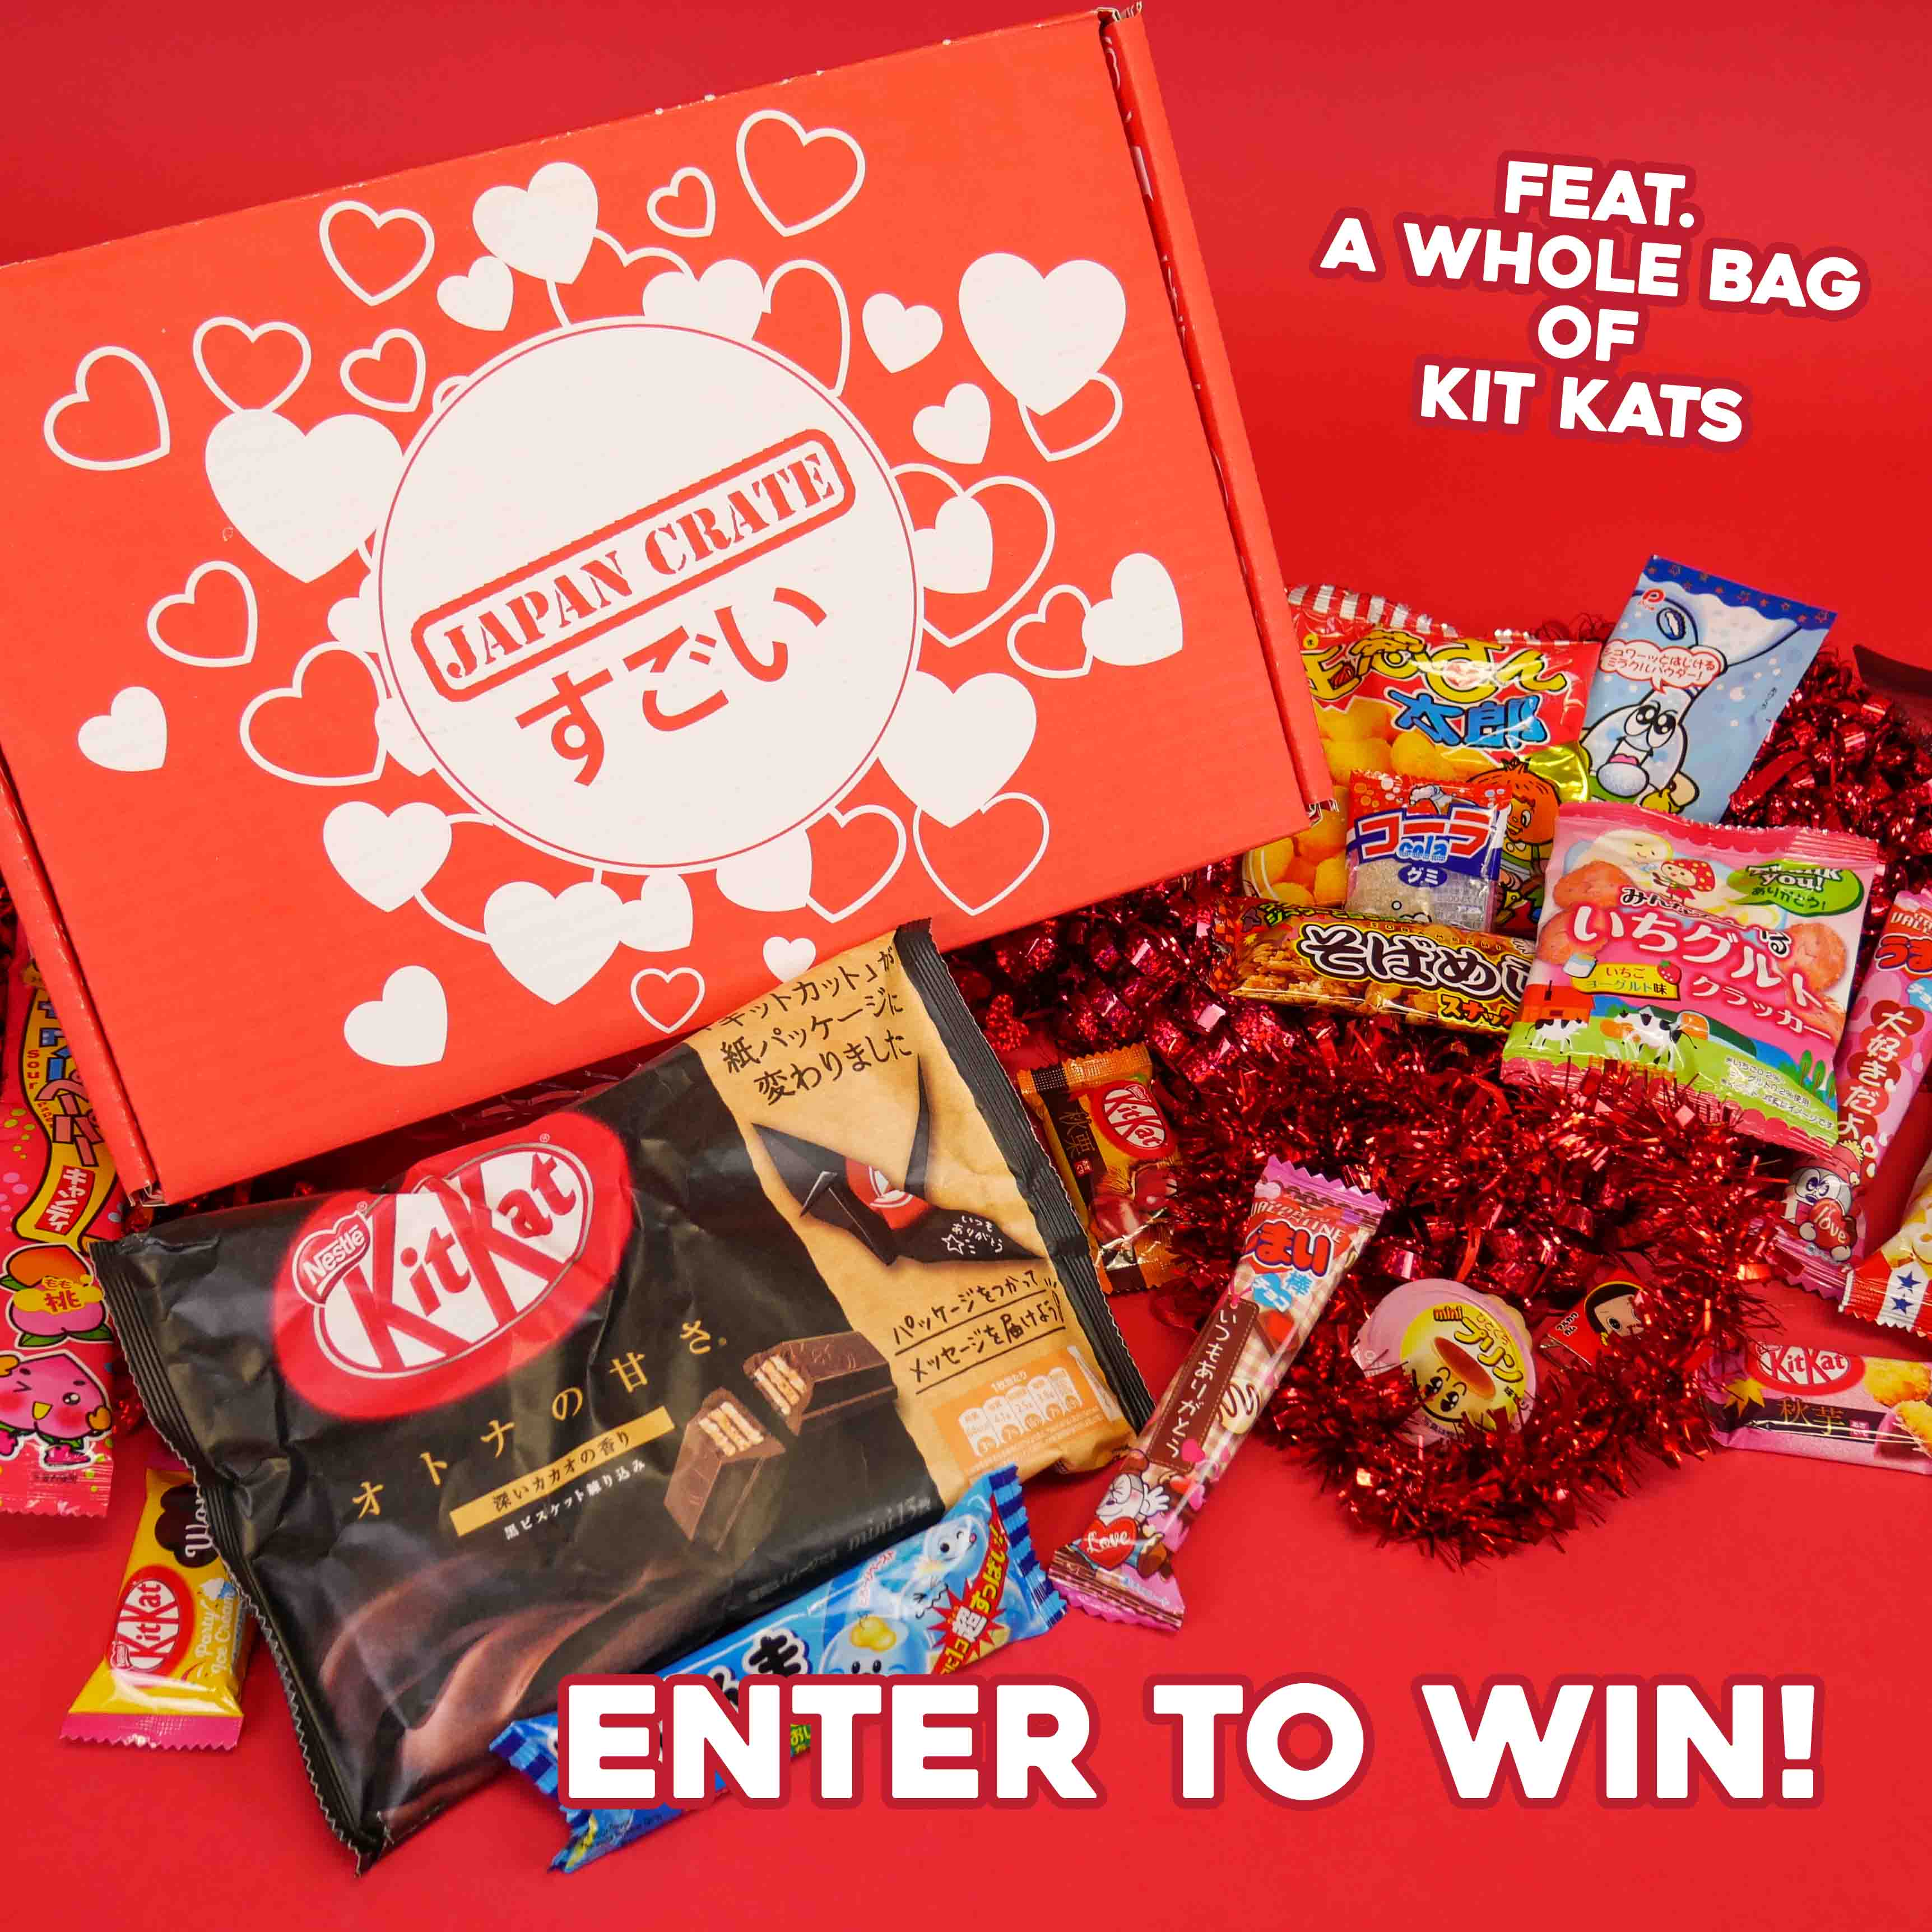 Japan Crate Valentine's Giveaway Giveaway Image